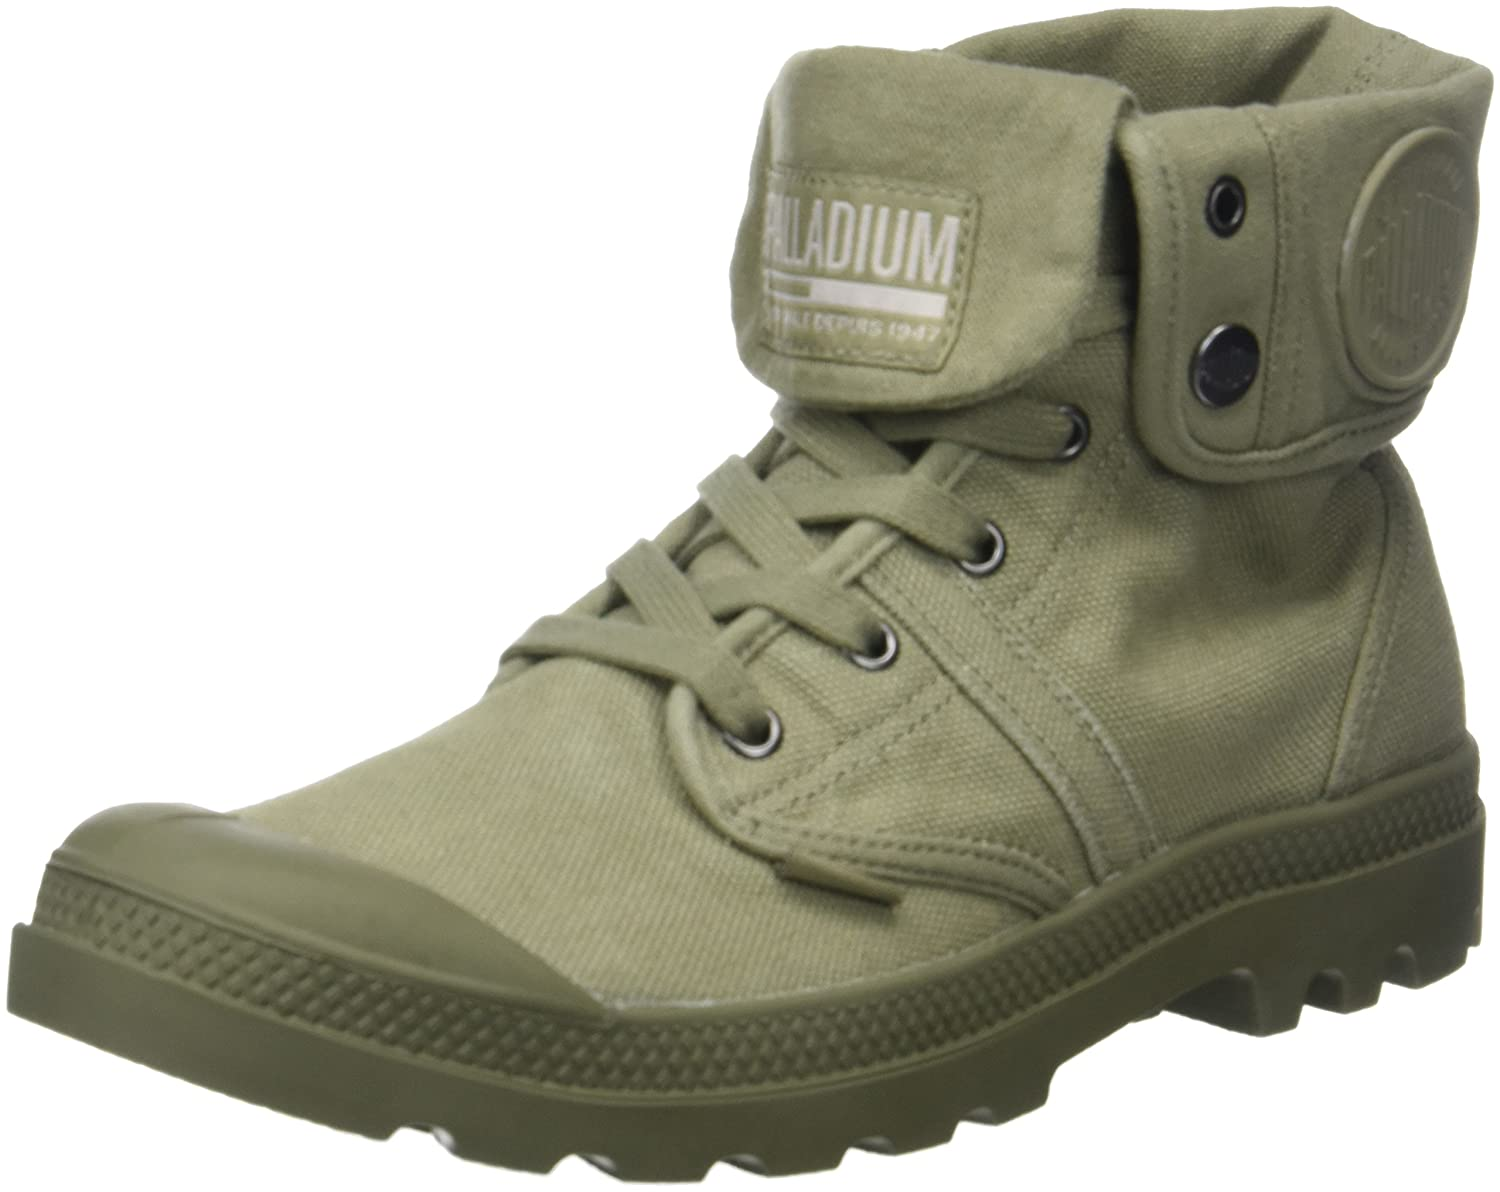 Palladium Palladium Us homme Baggy, Boots (Vetiver/Burnt homme Vert (Vetiver/Burnt Olive K81) a82772c - therethere.space